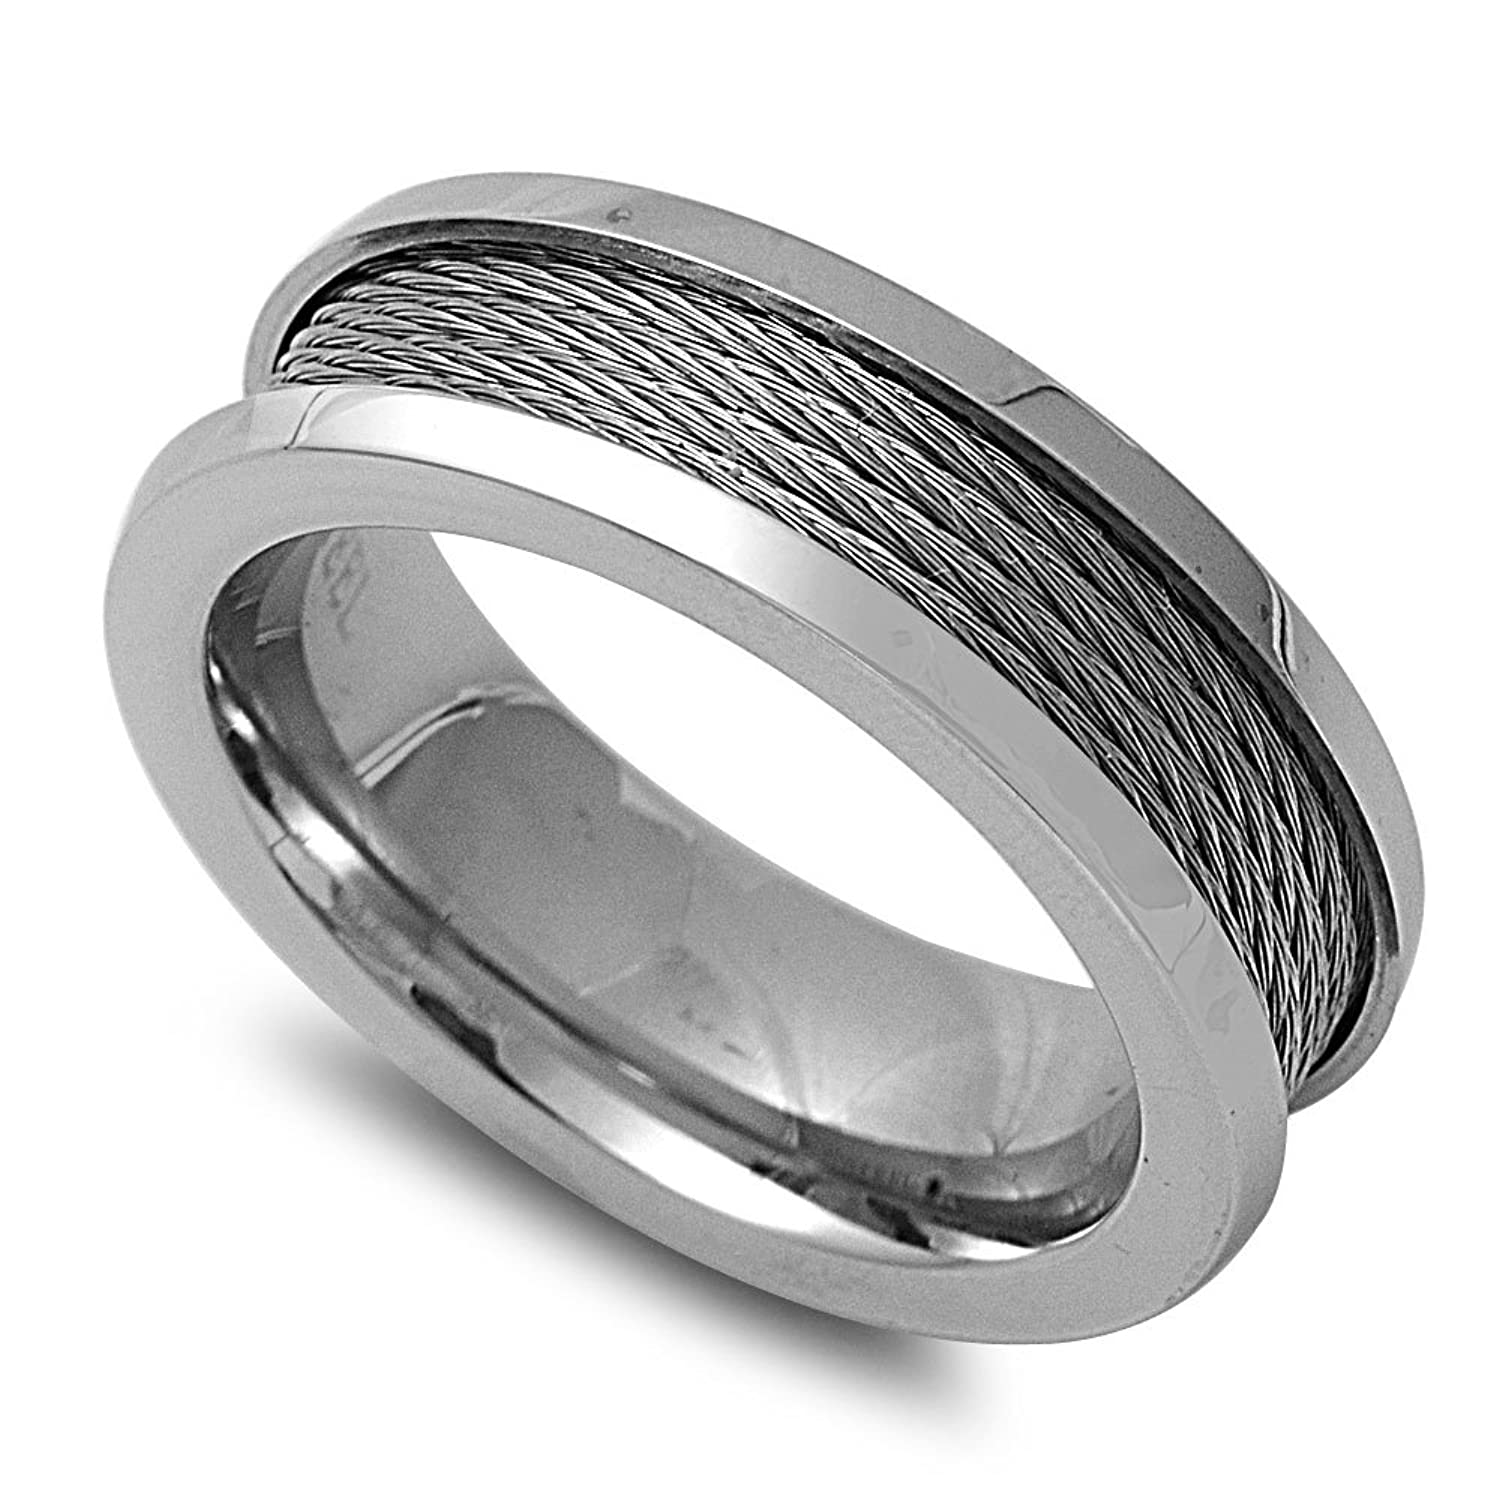 Stainless Steel Rope Weave Band Men's Ring